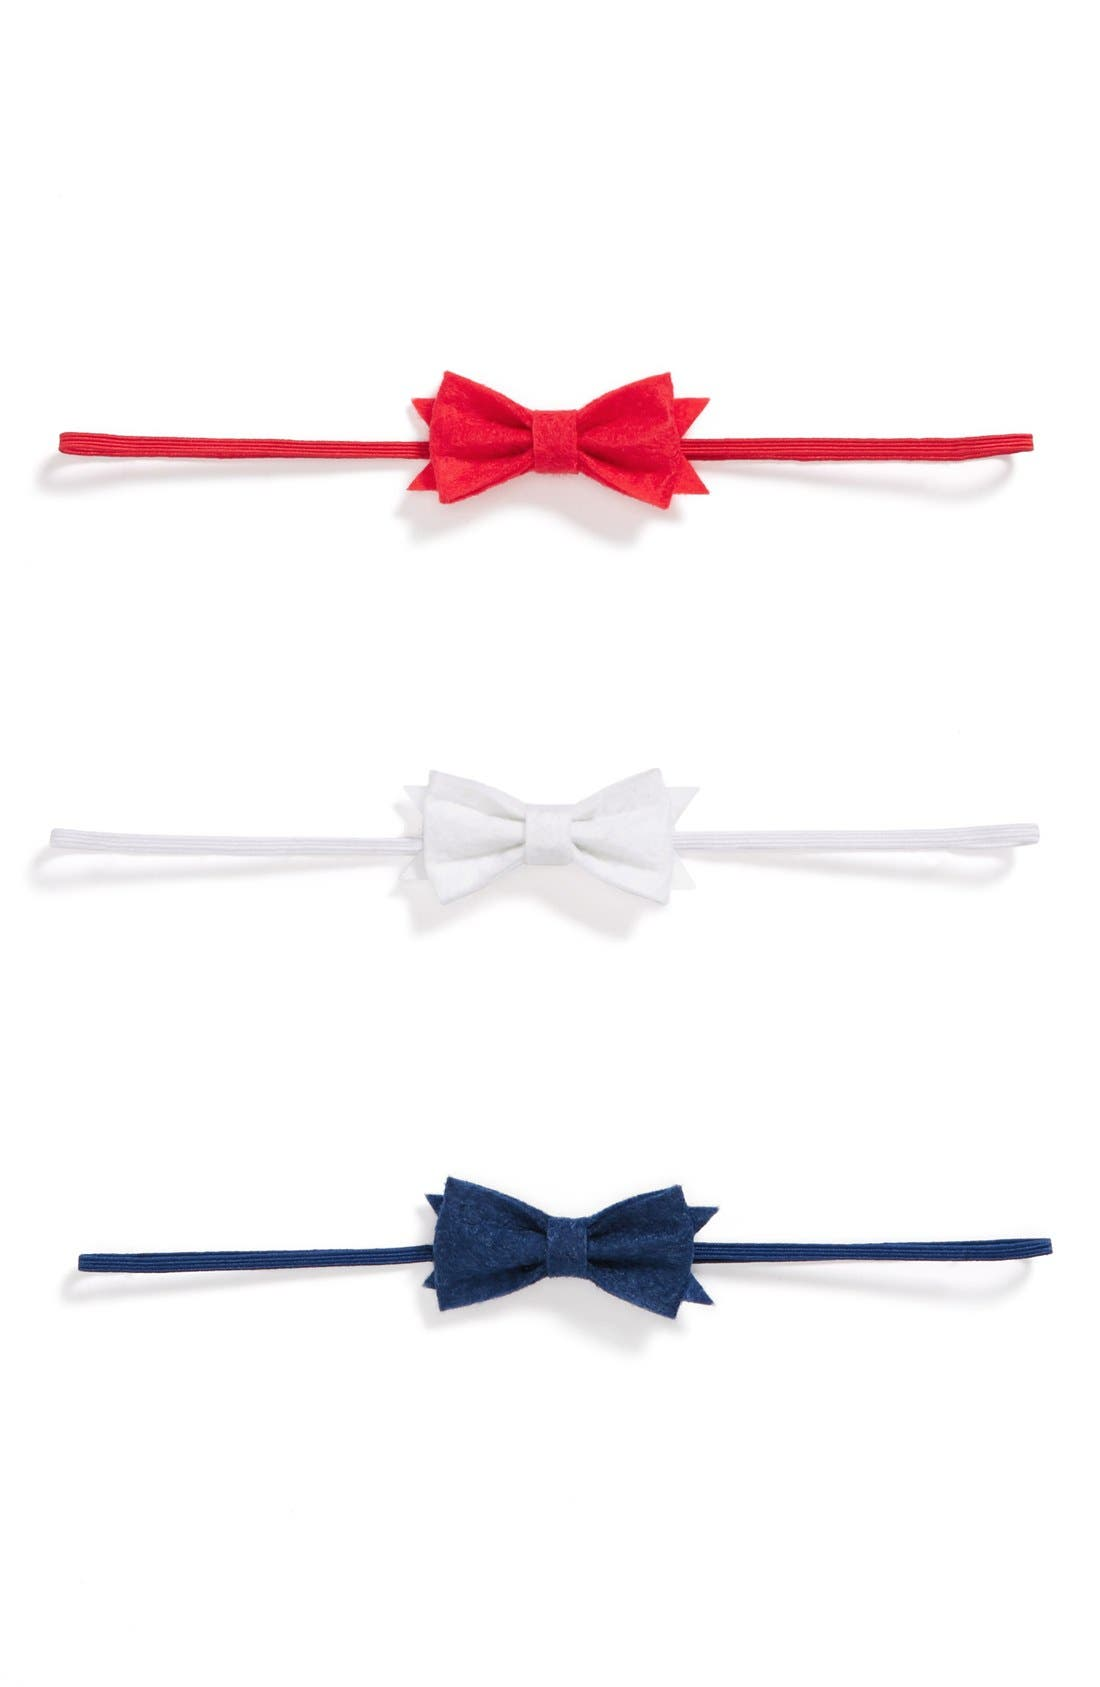 Main Image - Baby Bling Bow Headbands (Set of 3) (Baby Girls)